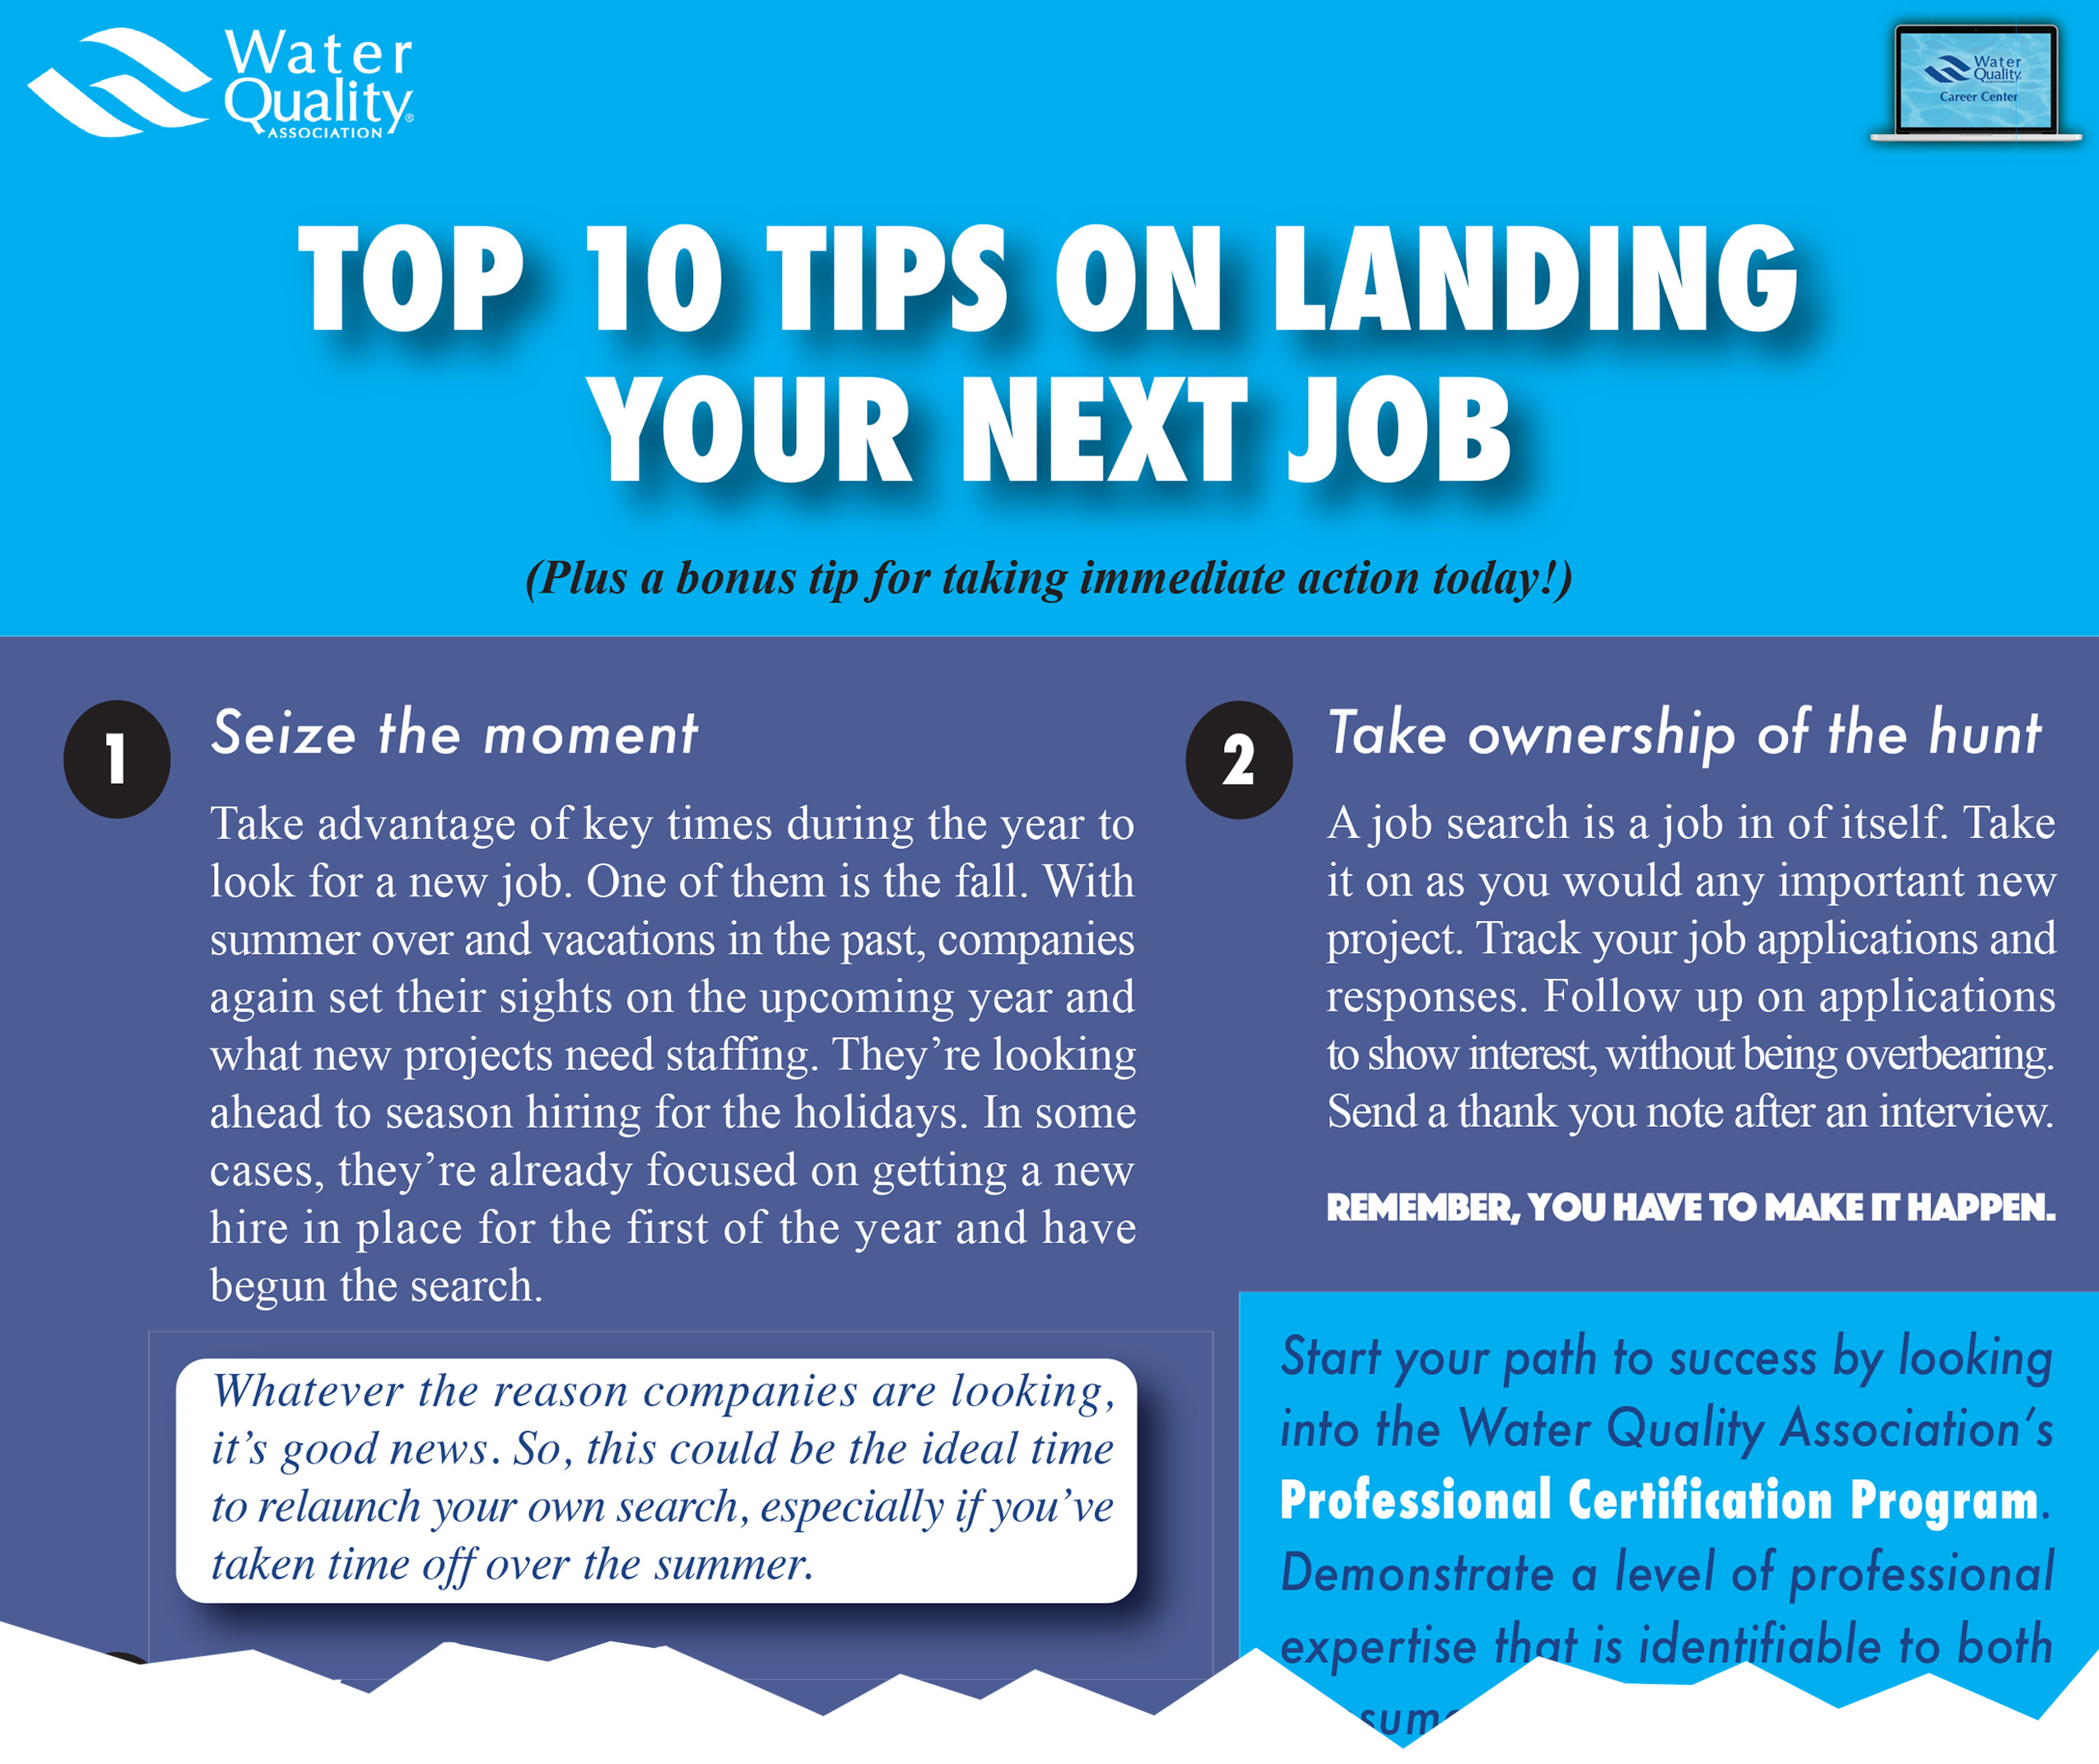 Top 10 Tips On Landing Your Next Job